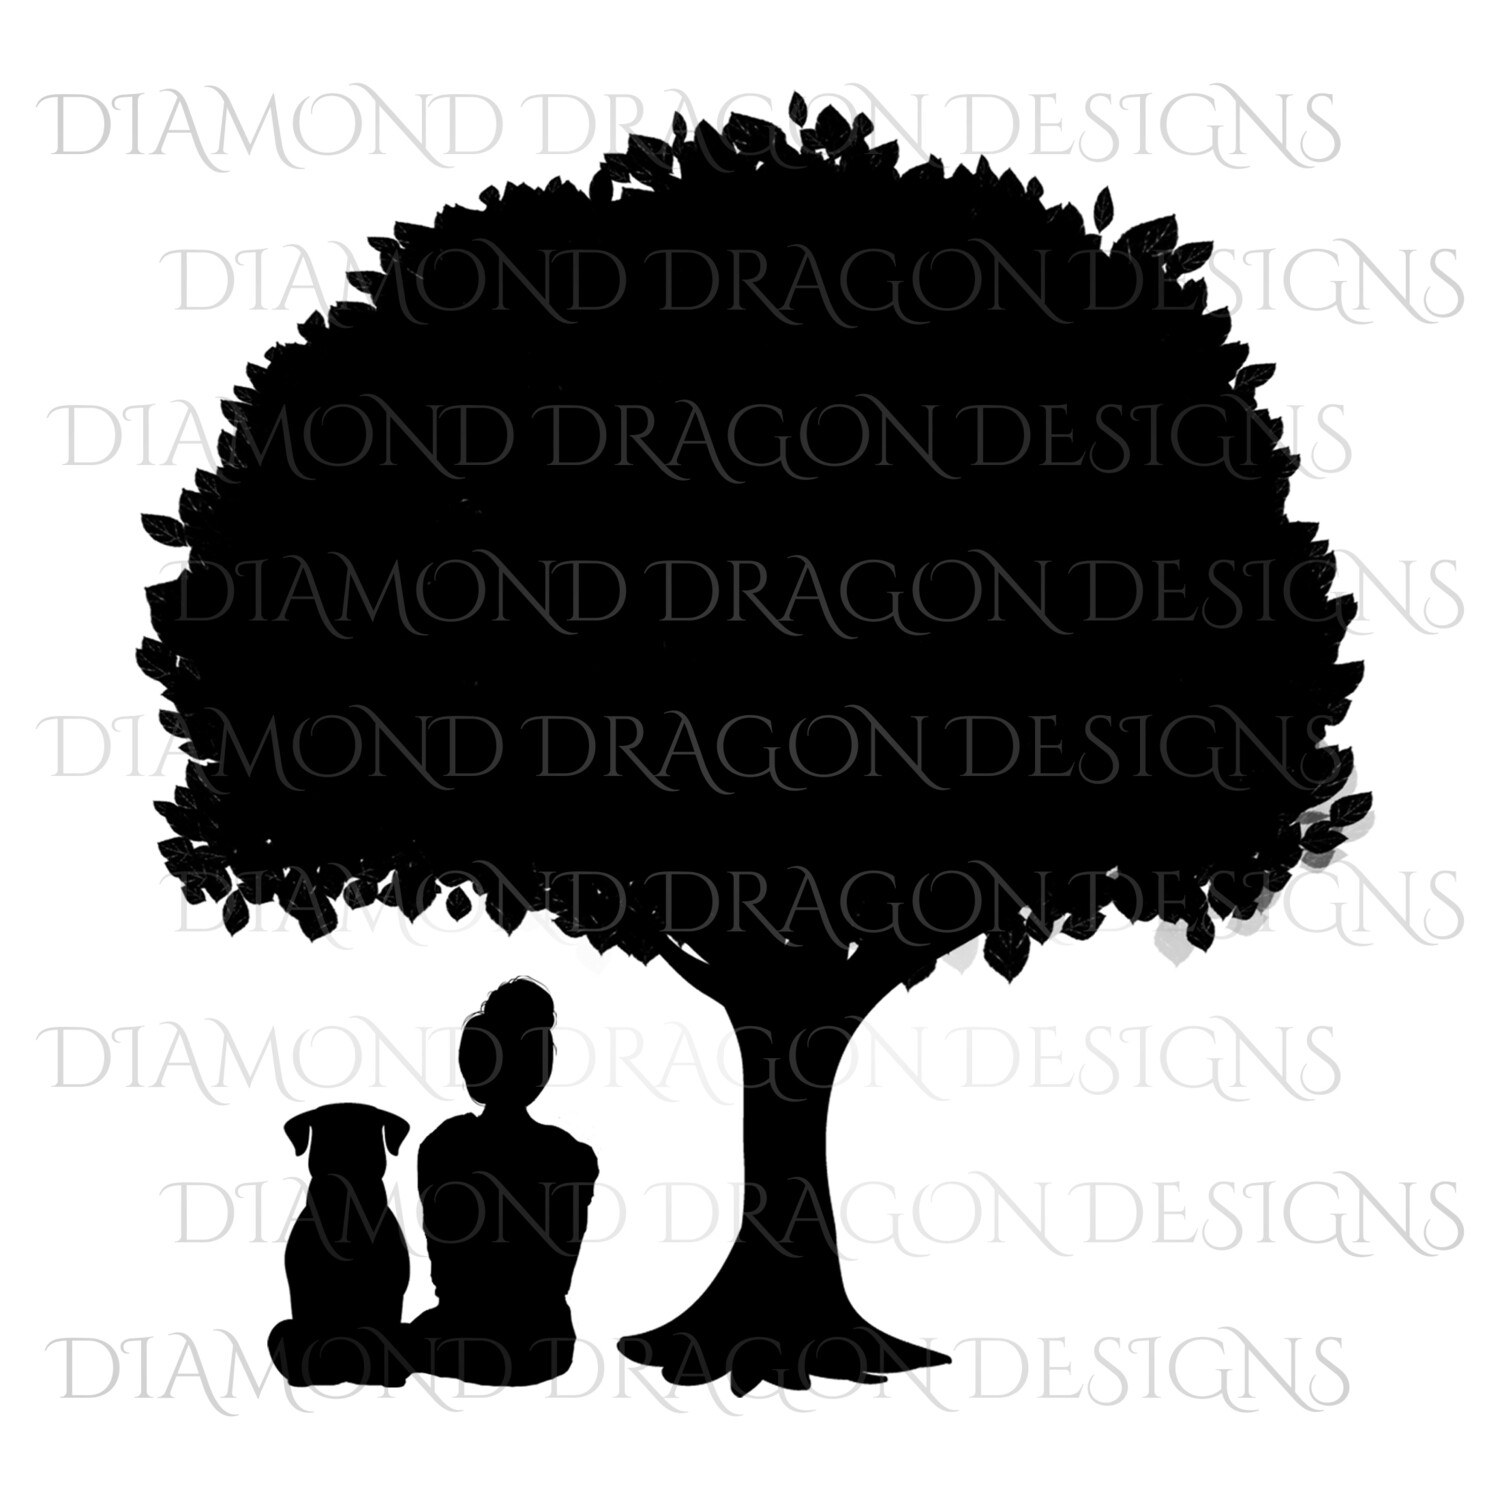 Dogs - Girl Who Loves Dogs, Girl & Dog Under Tree, Girls Best Friend, Woman and Dog Under Tree, Silhouette, Digital Image